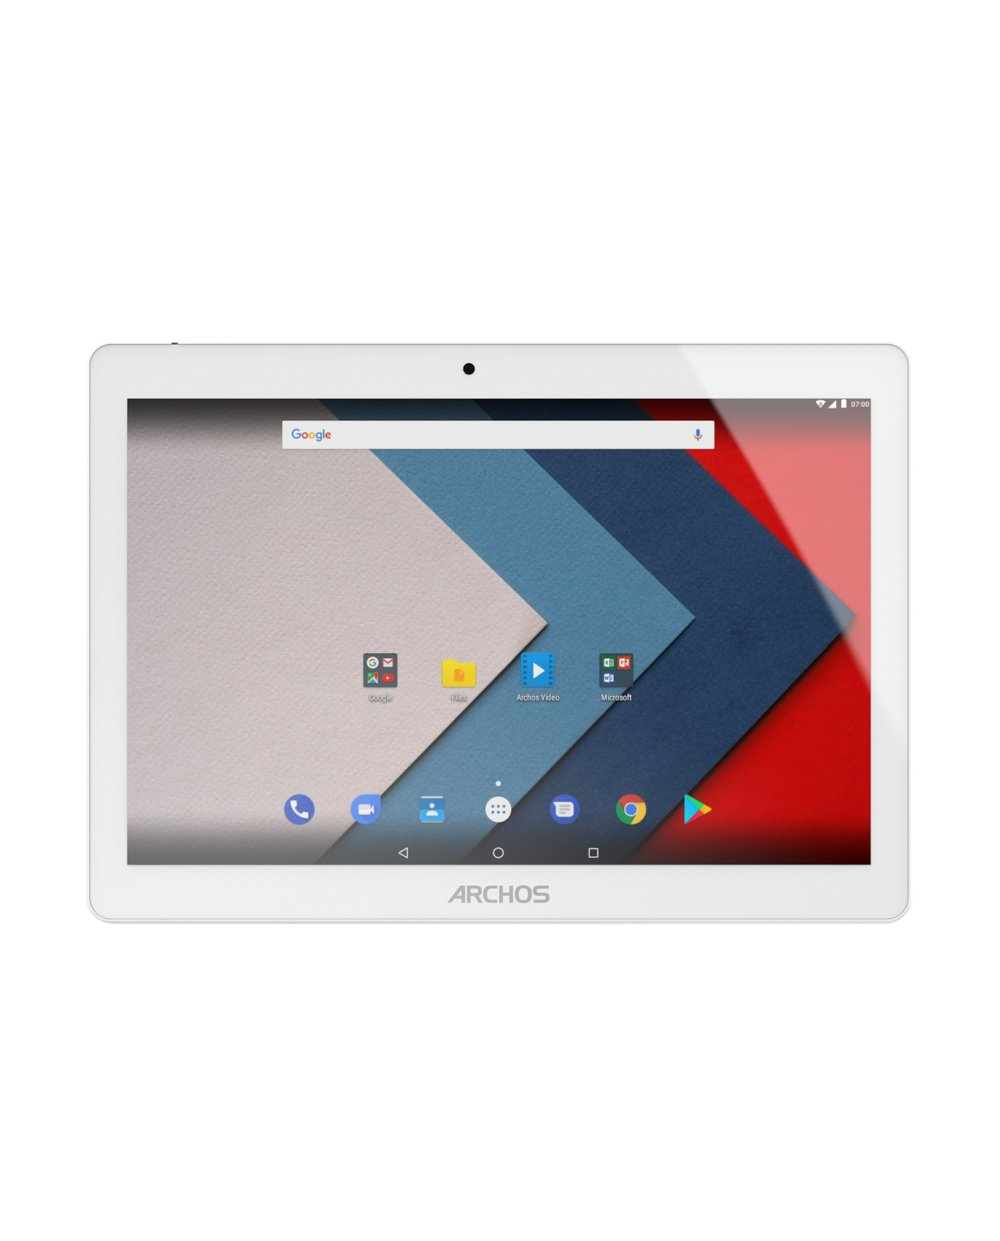 Tableta Archos Oxygen 101 4G 10.1 64GB Flash 2GB RAM WiFi + 4G Silver